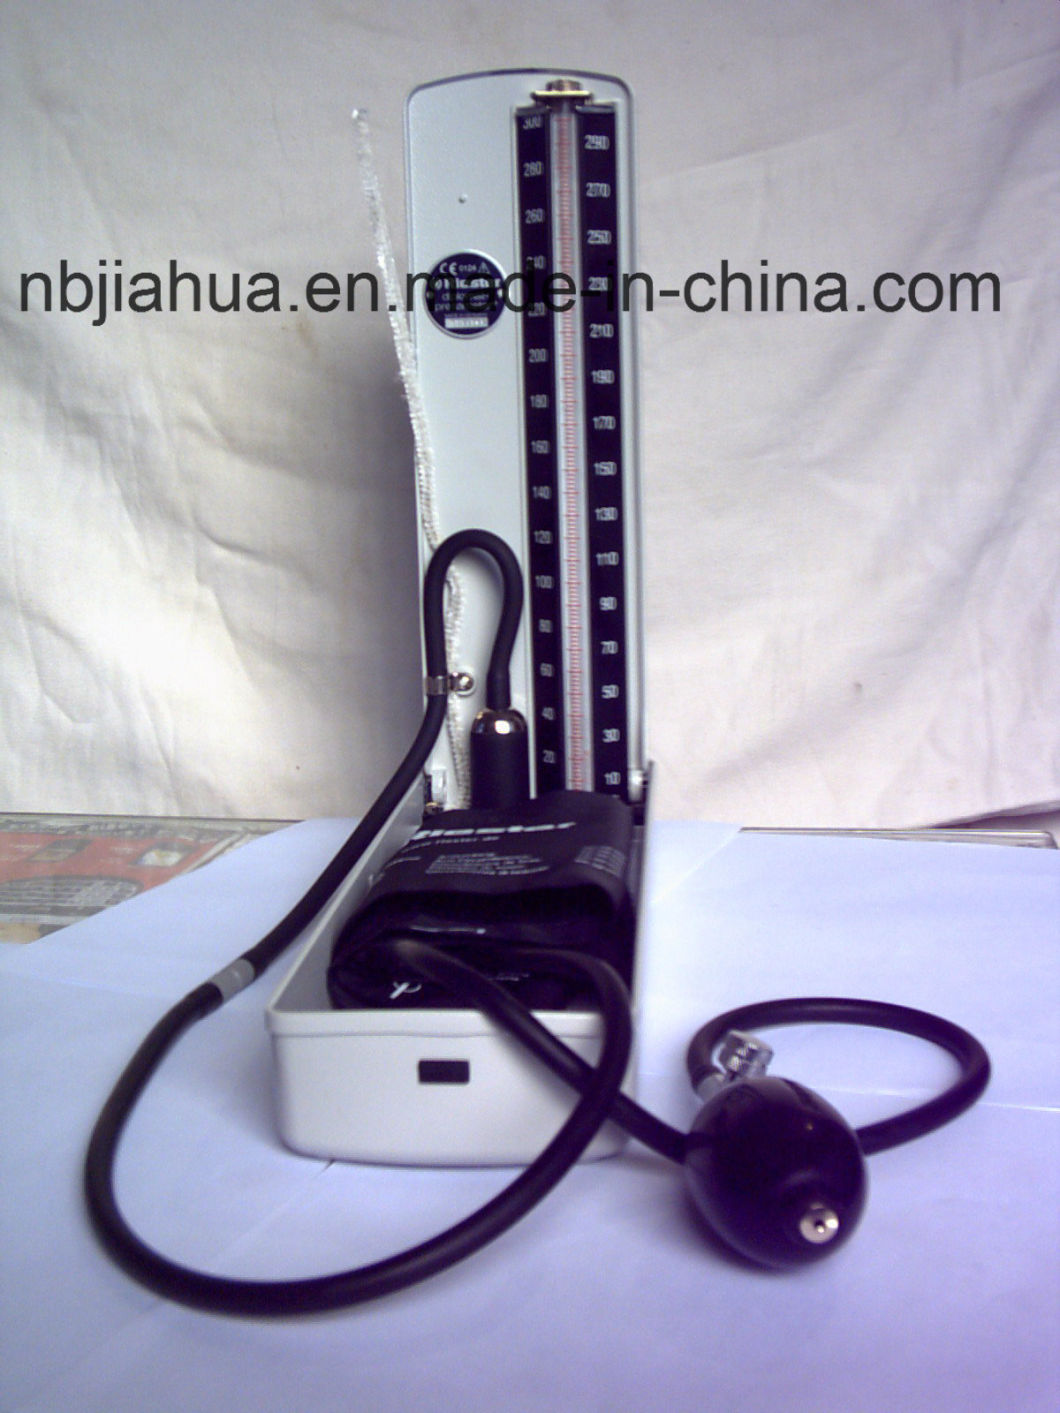 Hospital Use Movable Stand Type Mercury Sphygmomanometer/Blood Pressure Monitor